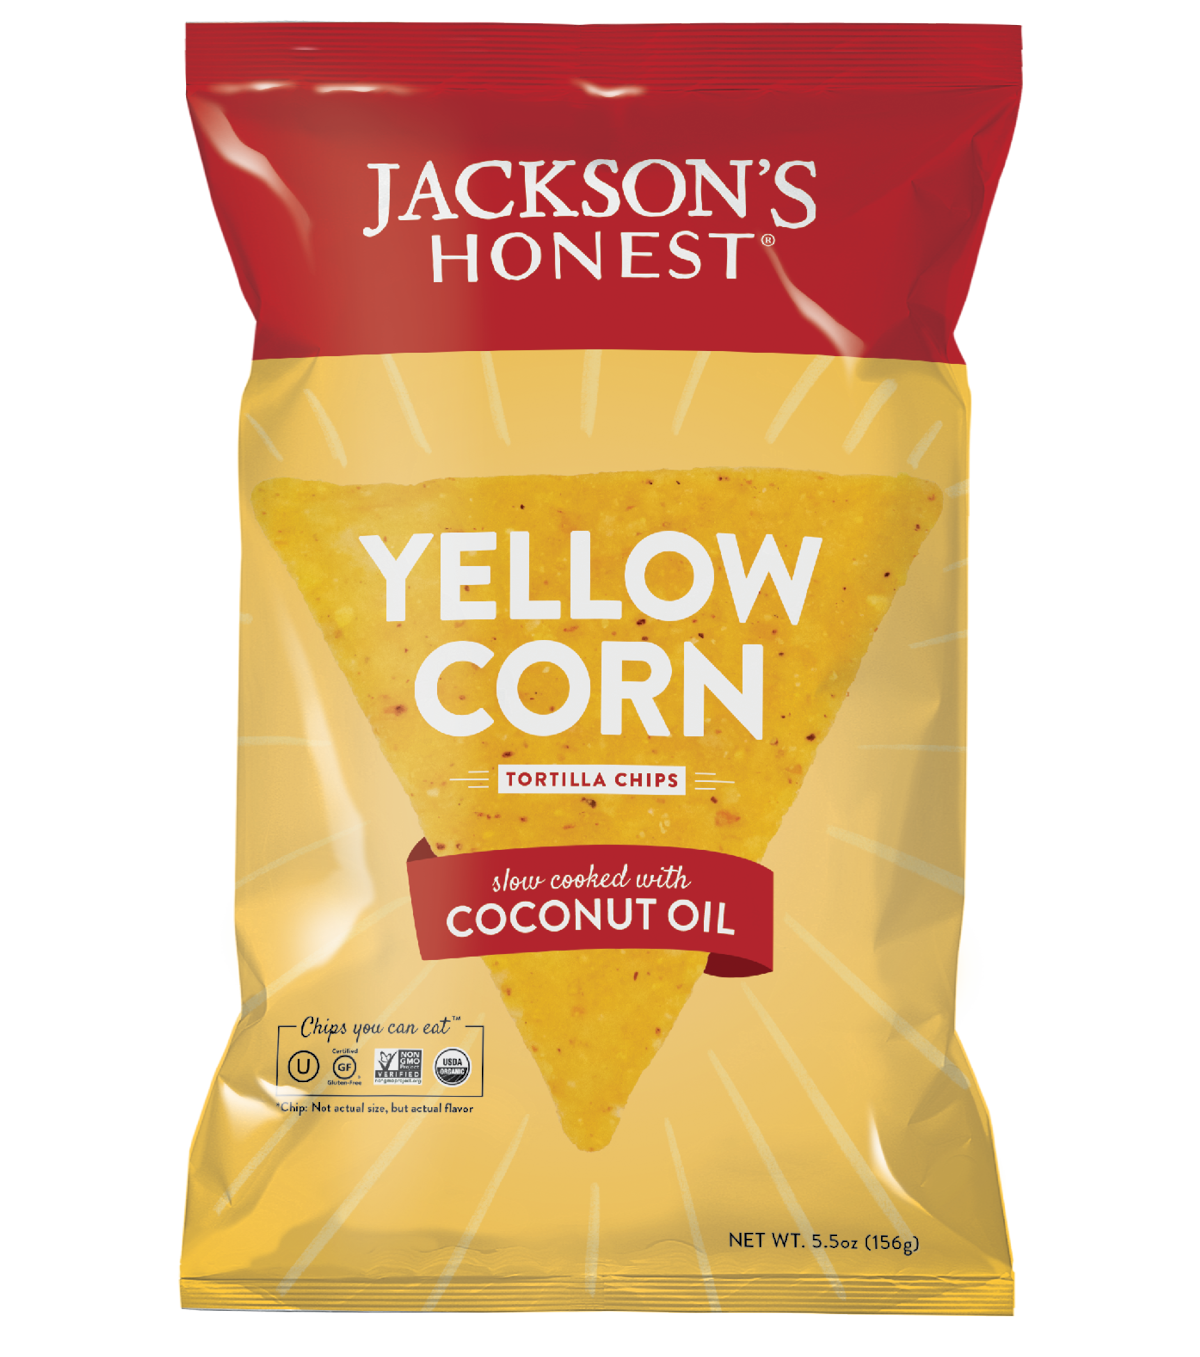 Jackson's Honest Packaging by Megan Hillman